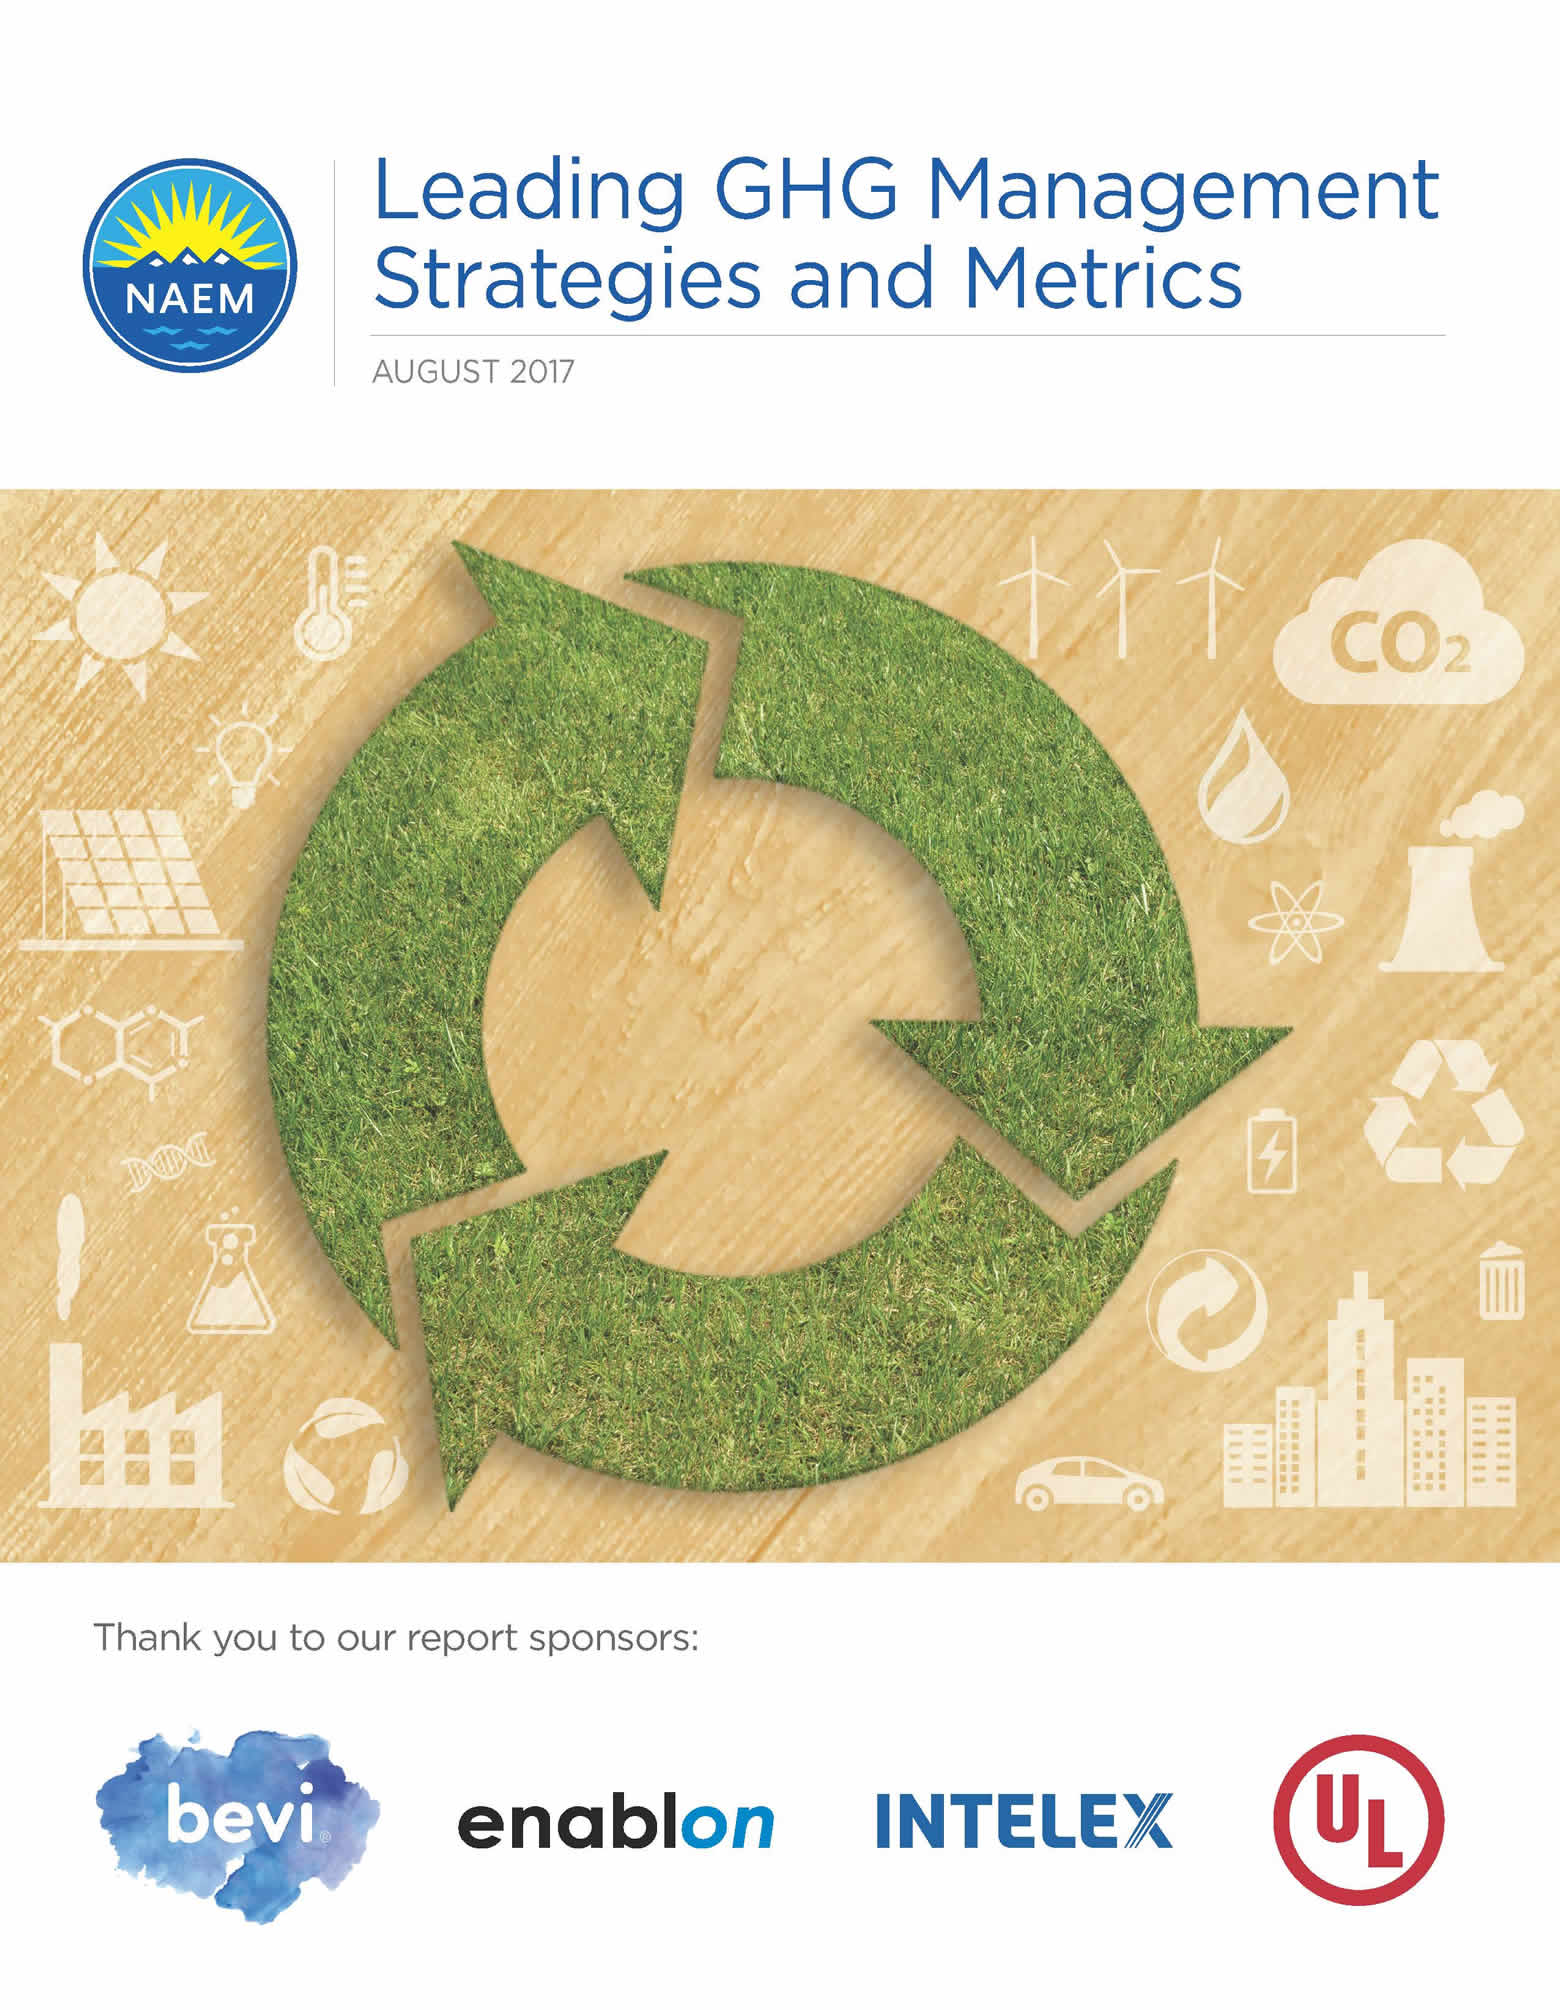 naem-research-reports-2017-leading-ghg-management-strategies-and-metrics-1560x2010